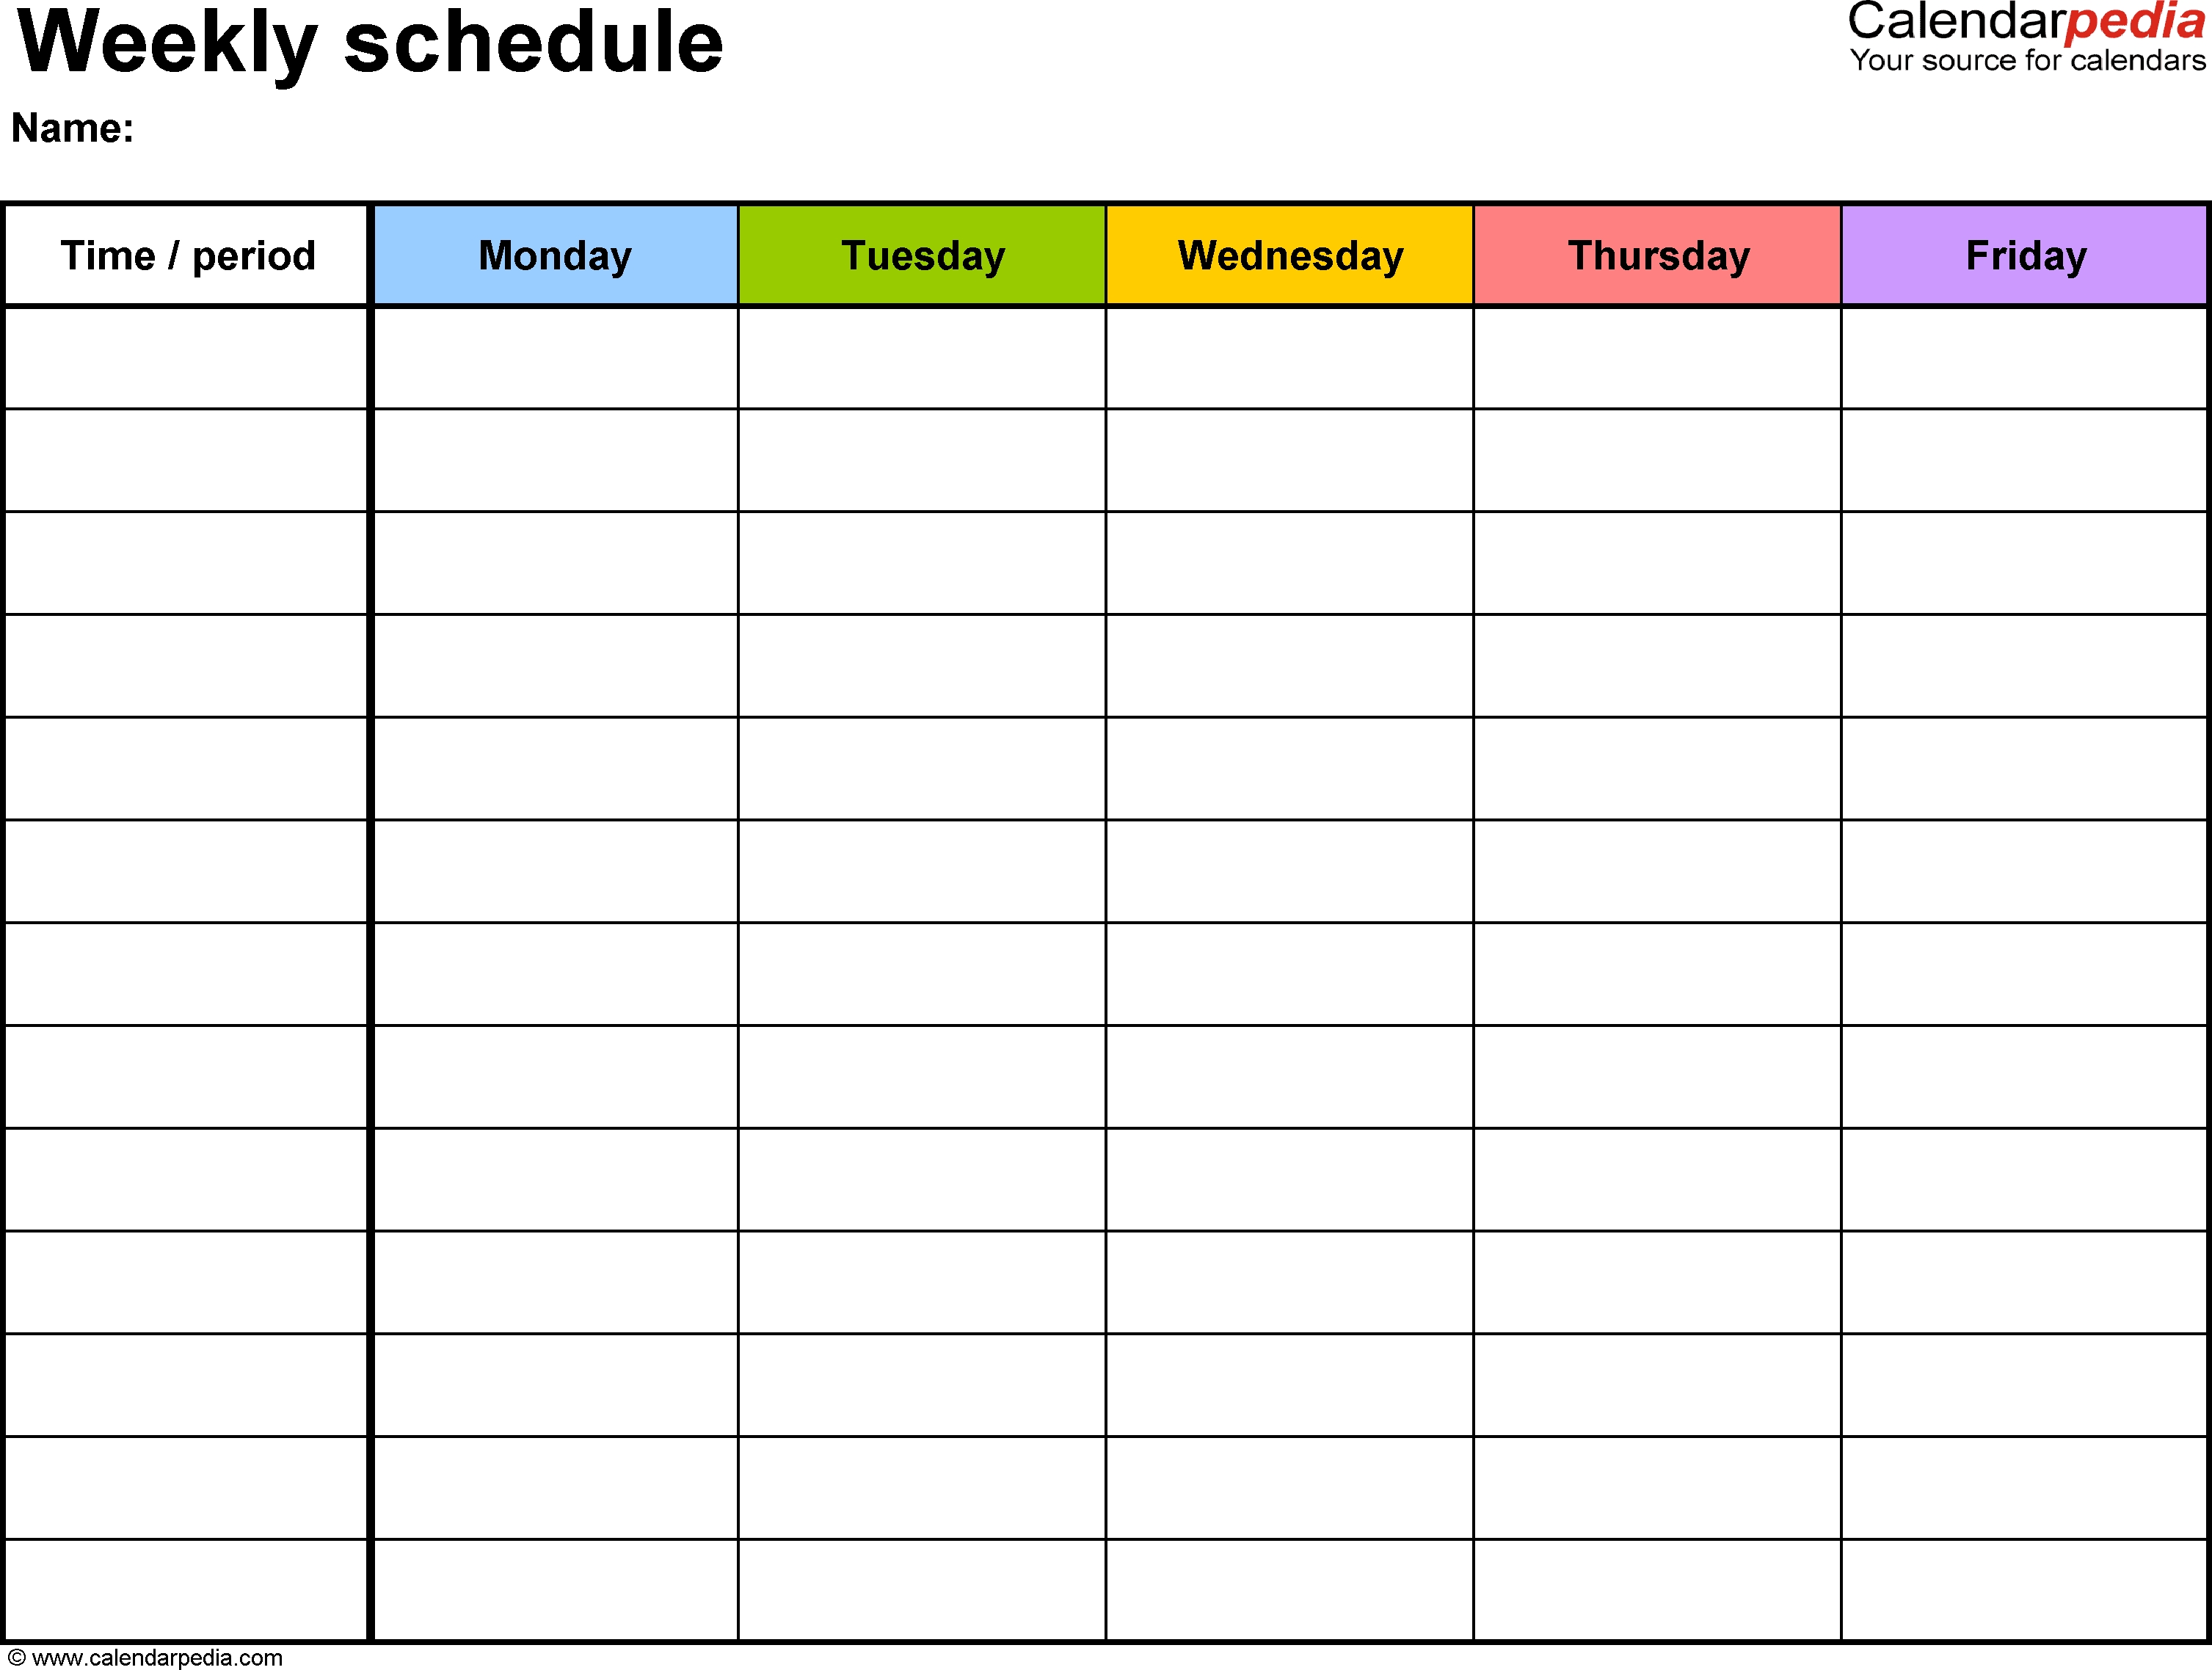 Weekly Schedule Template For Word Version 1: Landscape, 1 Page  Printable Appointment Calendars Monday Through Friday